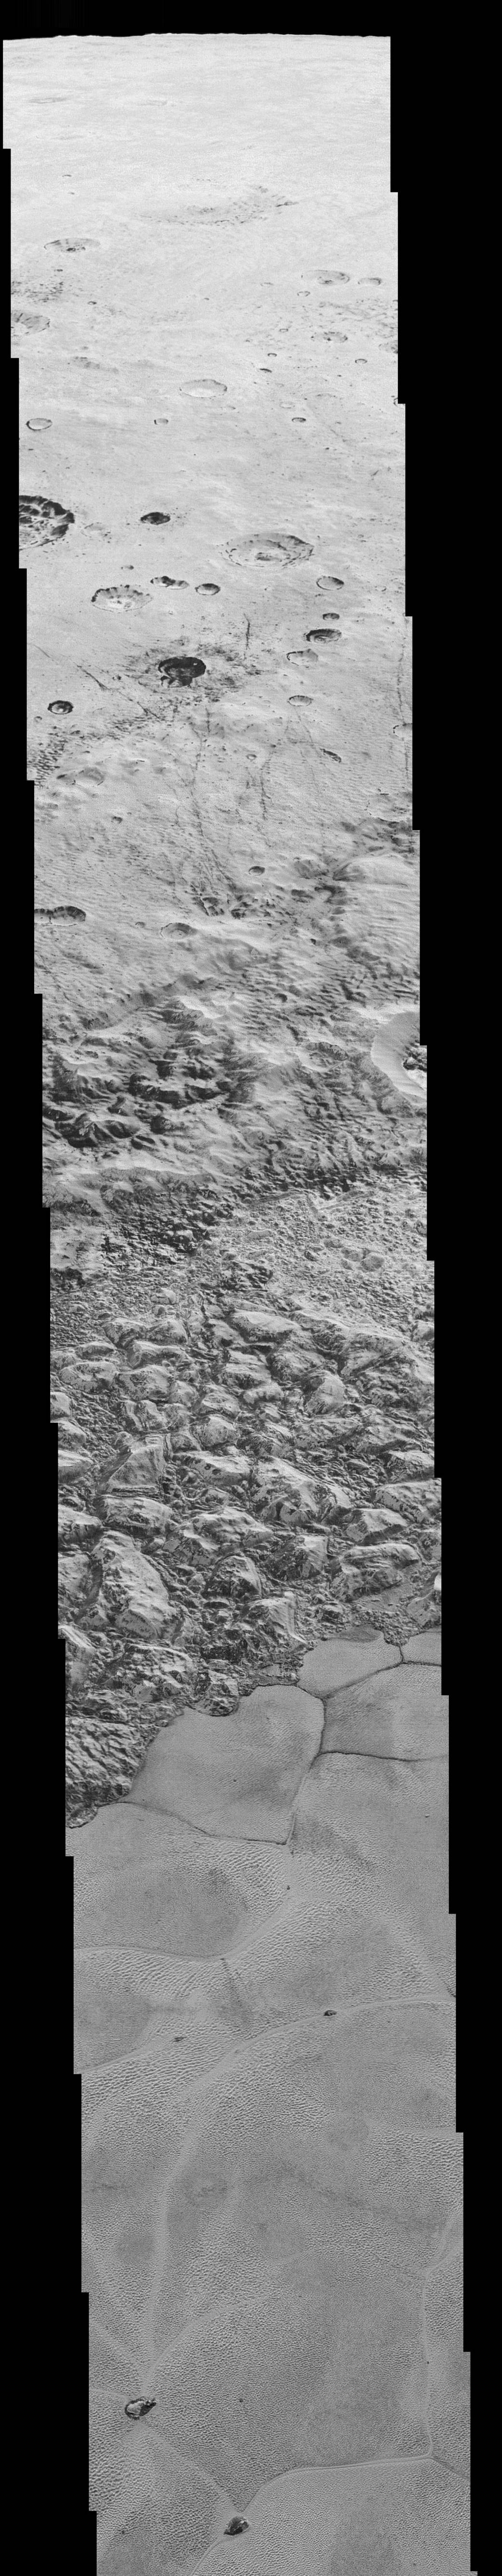 This mosaic is composed of the sharpest views of Pluto that NASA's New Horizons spacecraft obtained during its flyby on July 14, 2015. The pictures are part of a sequence taken near New Horizons' closest approach to Pluto, with resolutions of about 250-280 feet (77-85 meters) per pixel – revealing features smaller than half a city block on Pluto's diverse surface. The images include a wide variety of cratered, mountainous and glacial terrains – giving scientists and the public alike a super-high resolution window to Pluto's geology. The images form a strip 50 miles (80 kilometers) wide trending from Pluto's jagged horizon about 500 miles (800 kilometers) northwest of the informally named Sputnik Planum, across the al-Idrisi mountains, onto the shoreline of Sputnik Planum and across its icy plains. They were made with the telescopic Long Range Reconnaissance Imager (LORRI) aboard New Horizons, over a timespan of about a minute centered on 11:36 UT on July 14 – just about 15 minutes before New Horizons' closest approach to Pluto –from a range of just 10,000 miles (17,000 kilometers). Credit: NASA/JHUAPL/SwRI